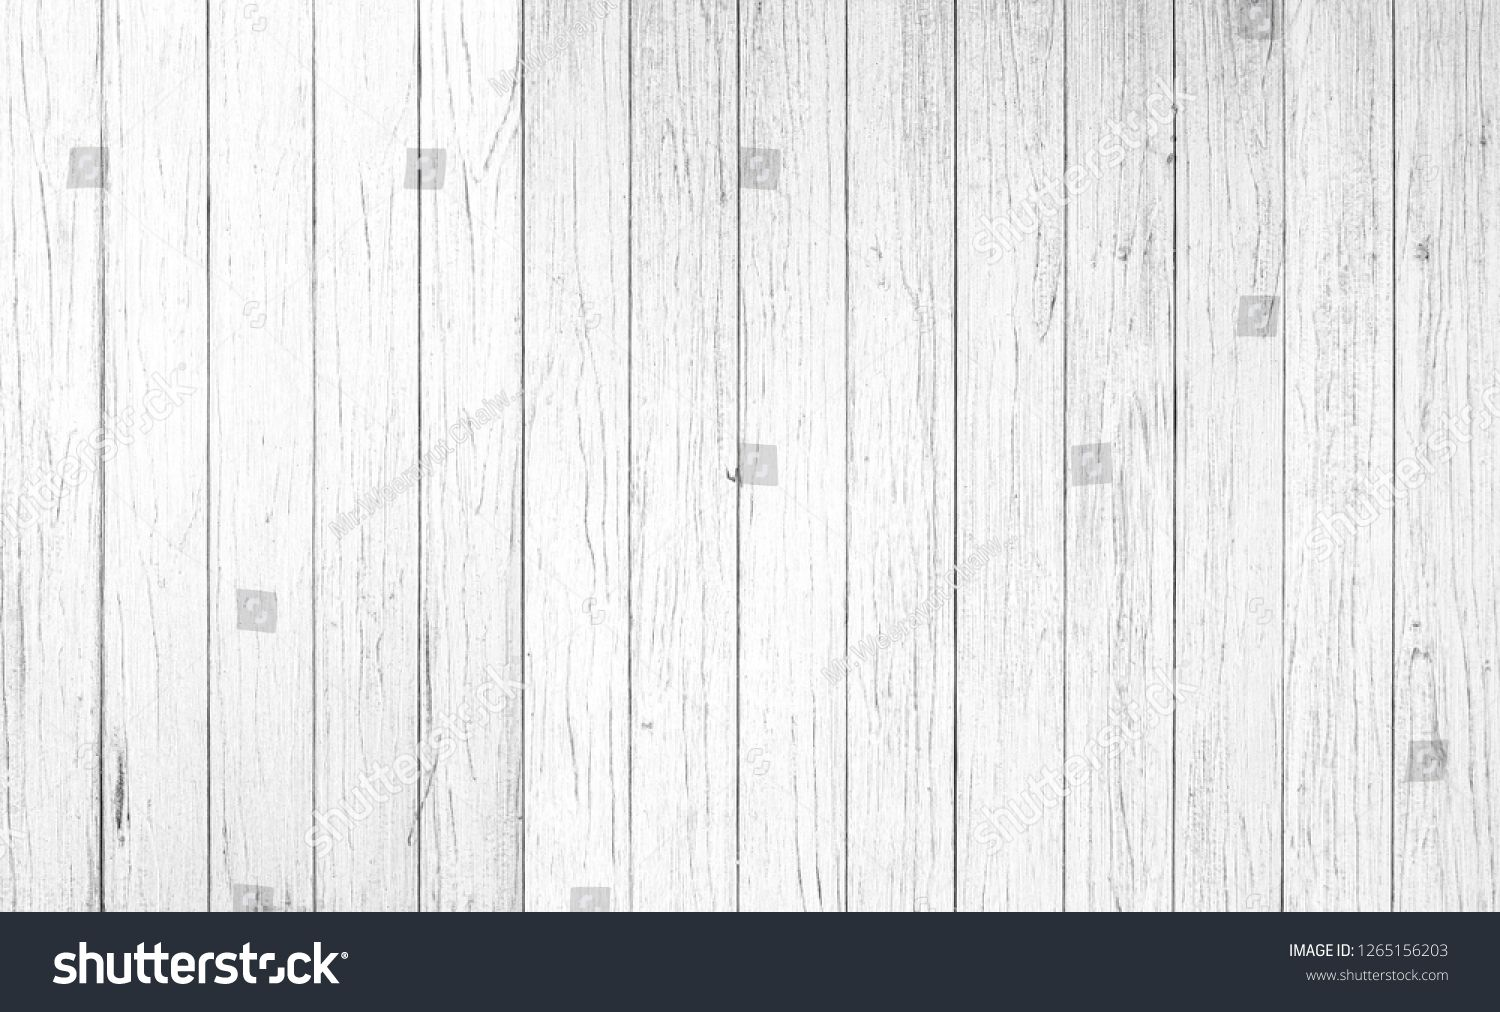 white wood texture background coming from natural tree. Wooden panel with beautiful patterns. Space for your work. #Sponsored , #ad, #background#coming#natural#white #woodtexturebackground